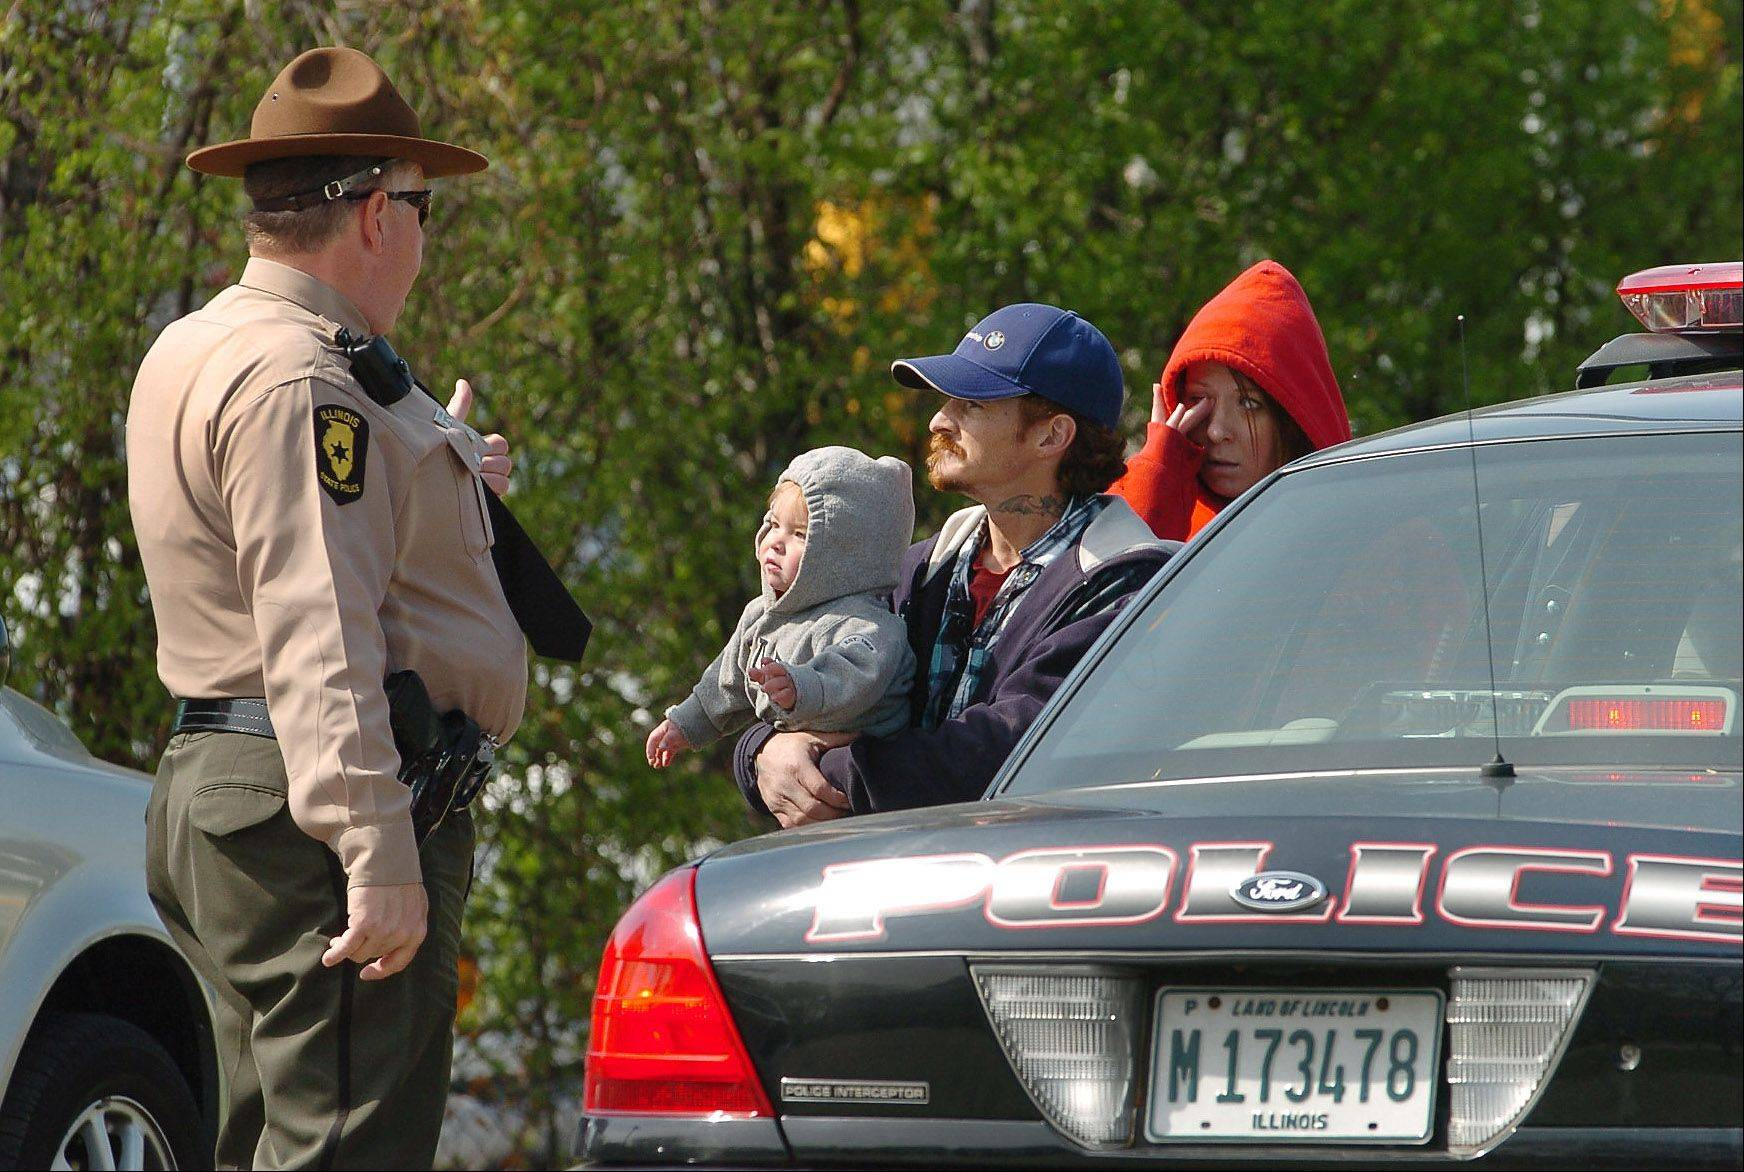 Bob Chwedyk/bchwedyk@dailyherald.comJoey and April Giancaspro, seeking donations with their 1-year-old son, Gavin, were warned Wednesday by a state trooper to leave the corner for the safety of the child.